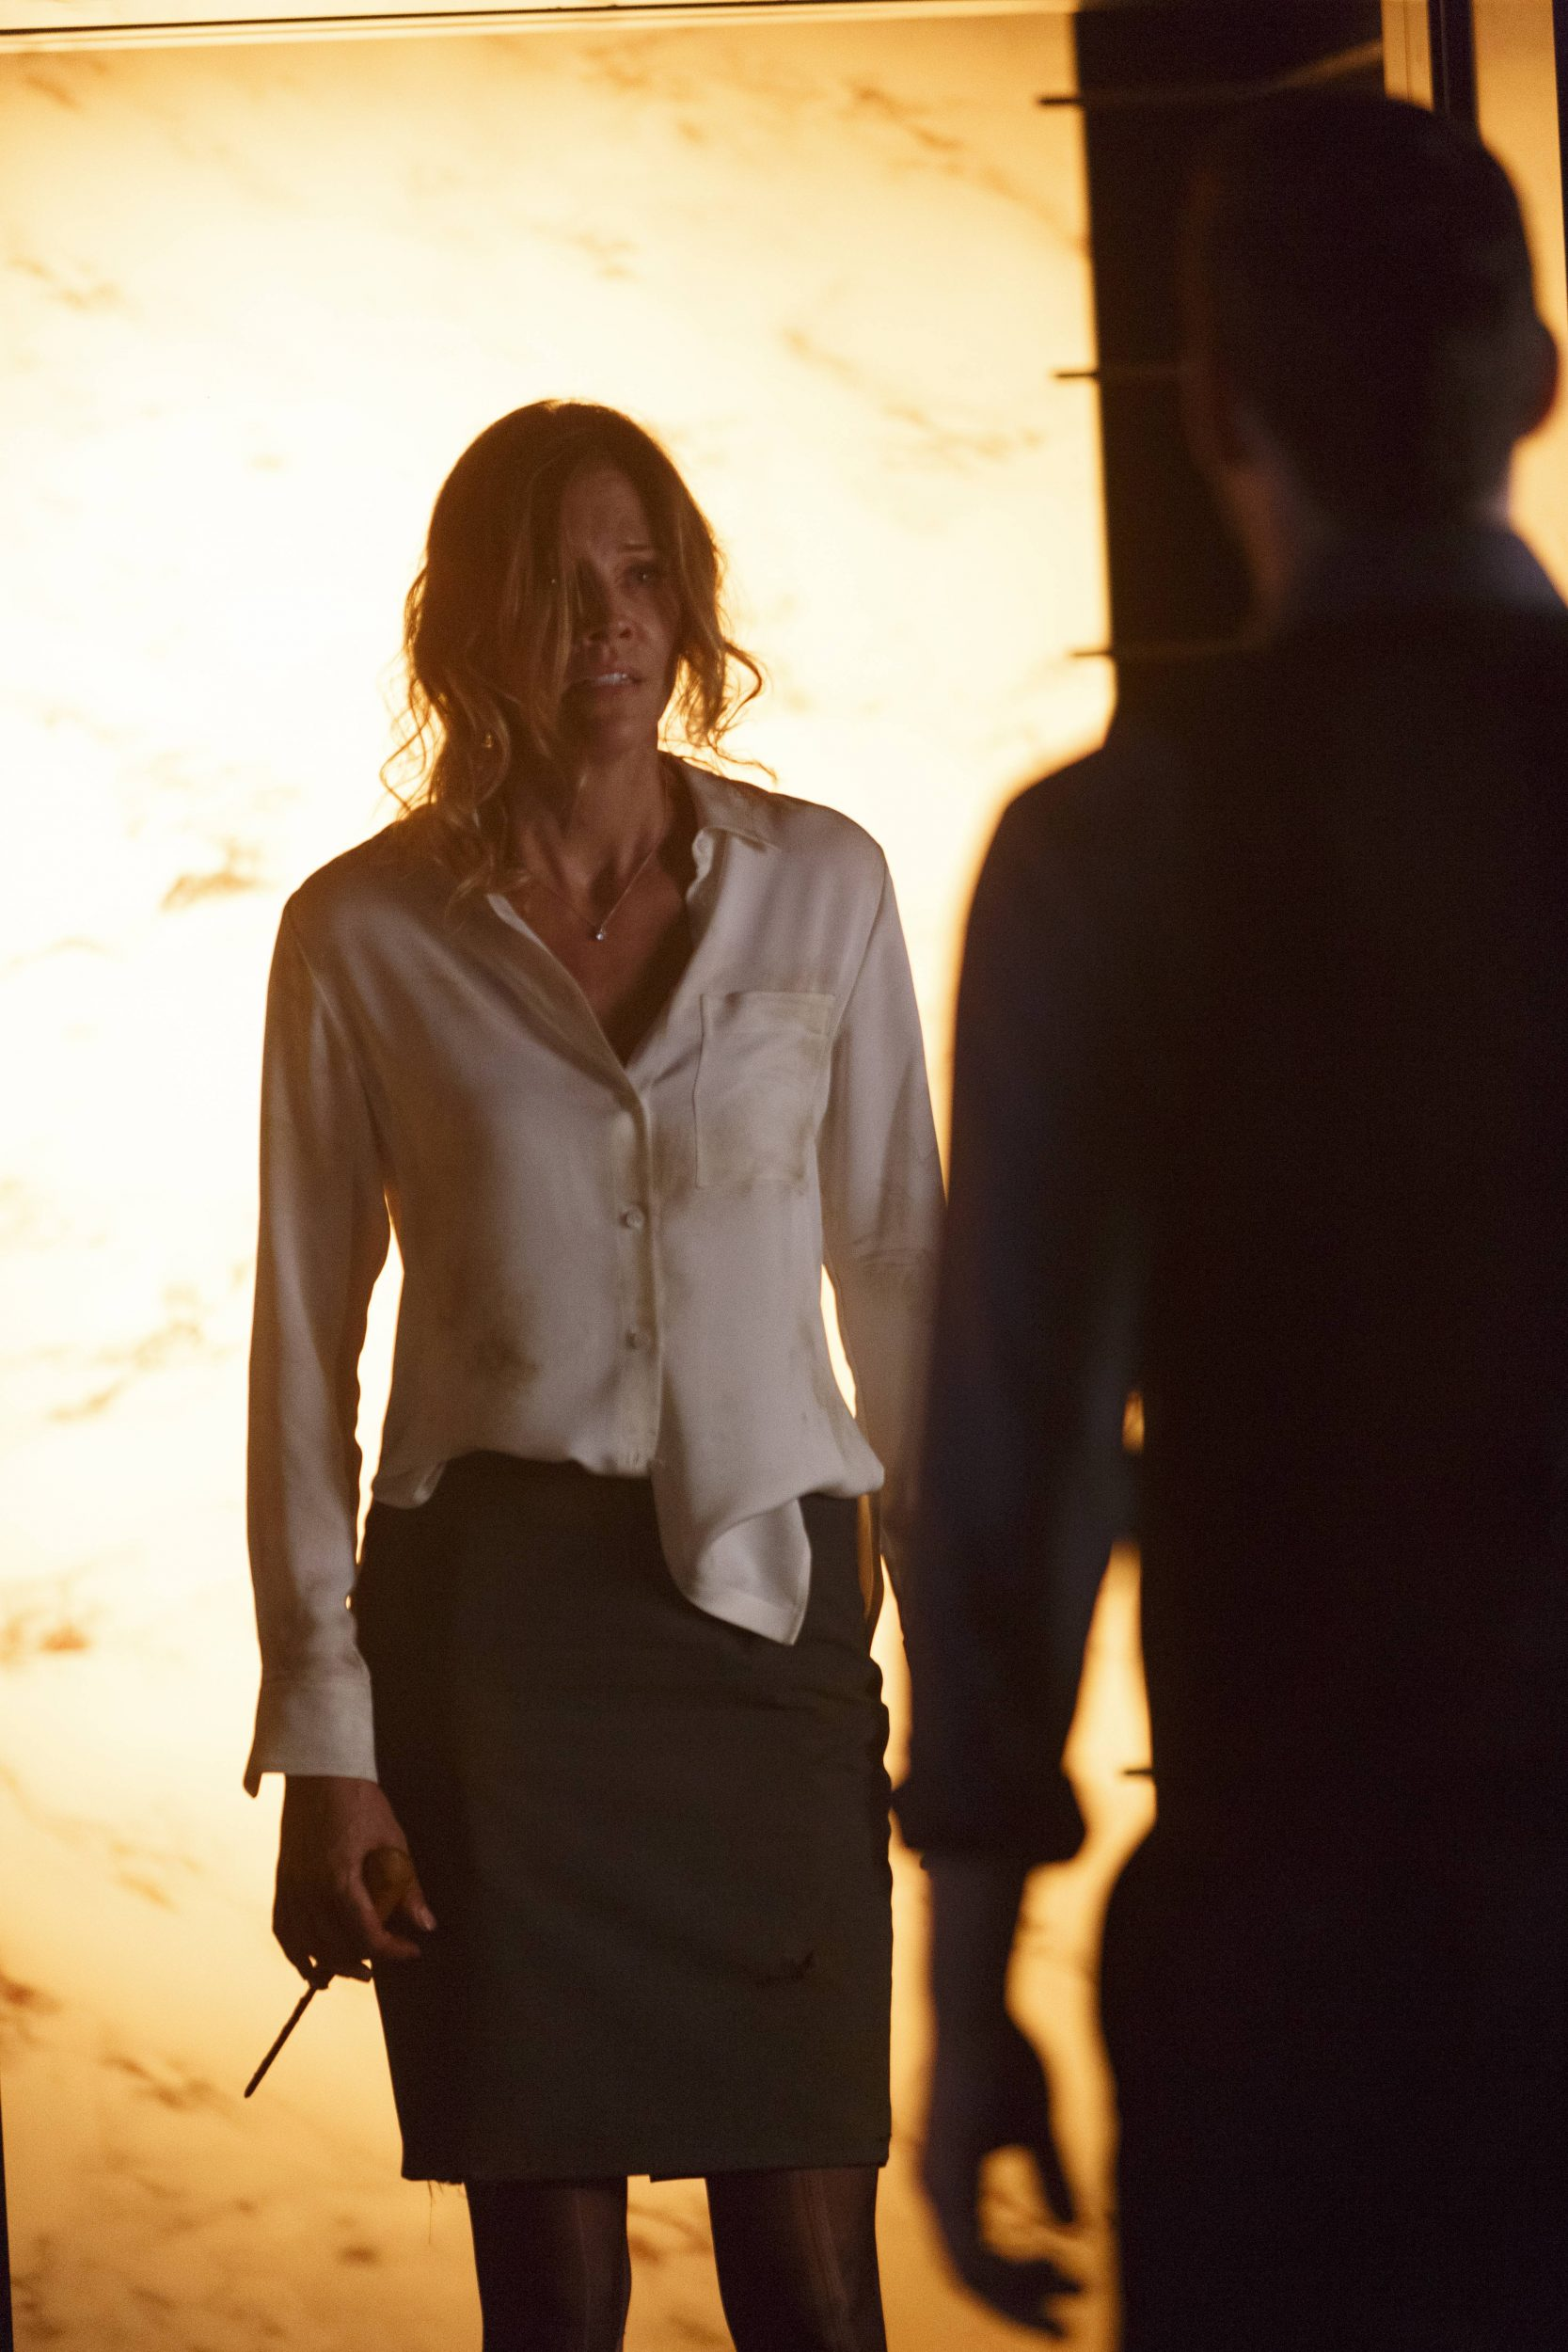 LUCIFER: Tricia Helfer in ÒEverythingÕs Coming Up LuciferÓ season premiere episode of LUCIFER airing Monday, Sept. 19 (9:01-10:00 PM ET/PT) on FOX ©2016 Fox Broadcasting Co. Cr: Michael Courtney/FOX.